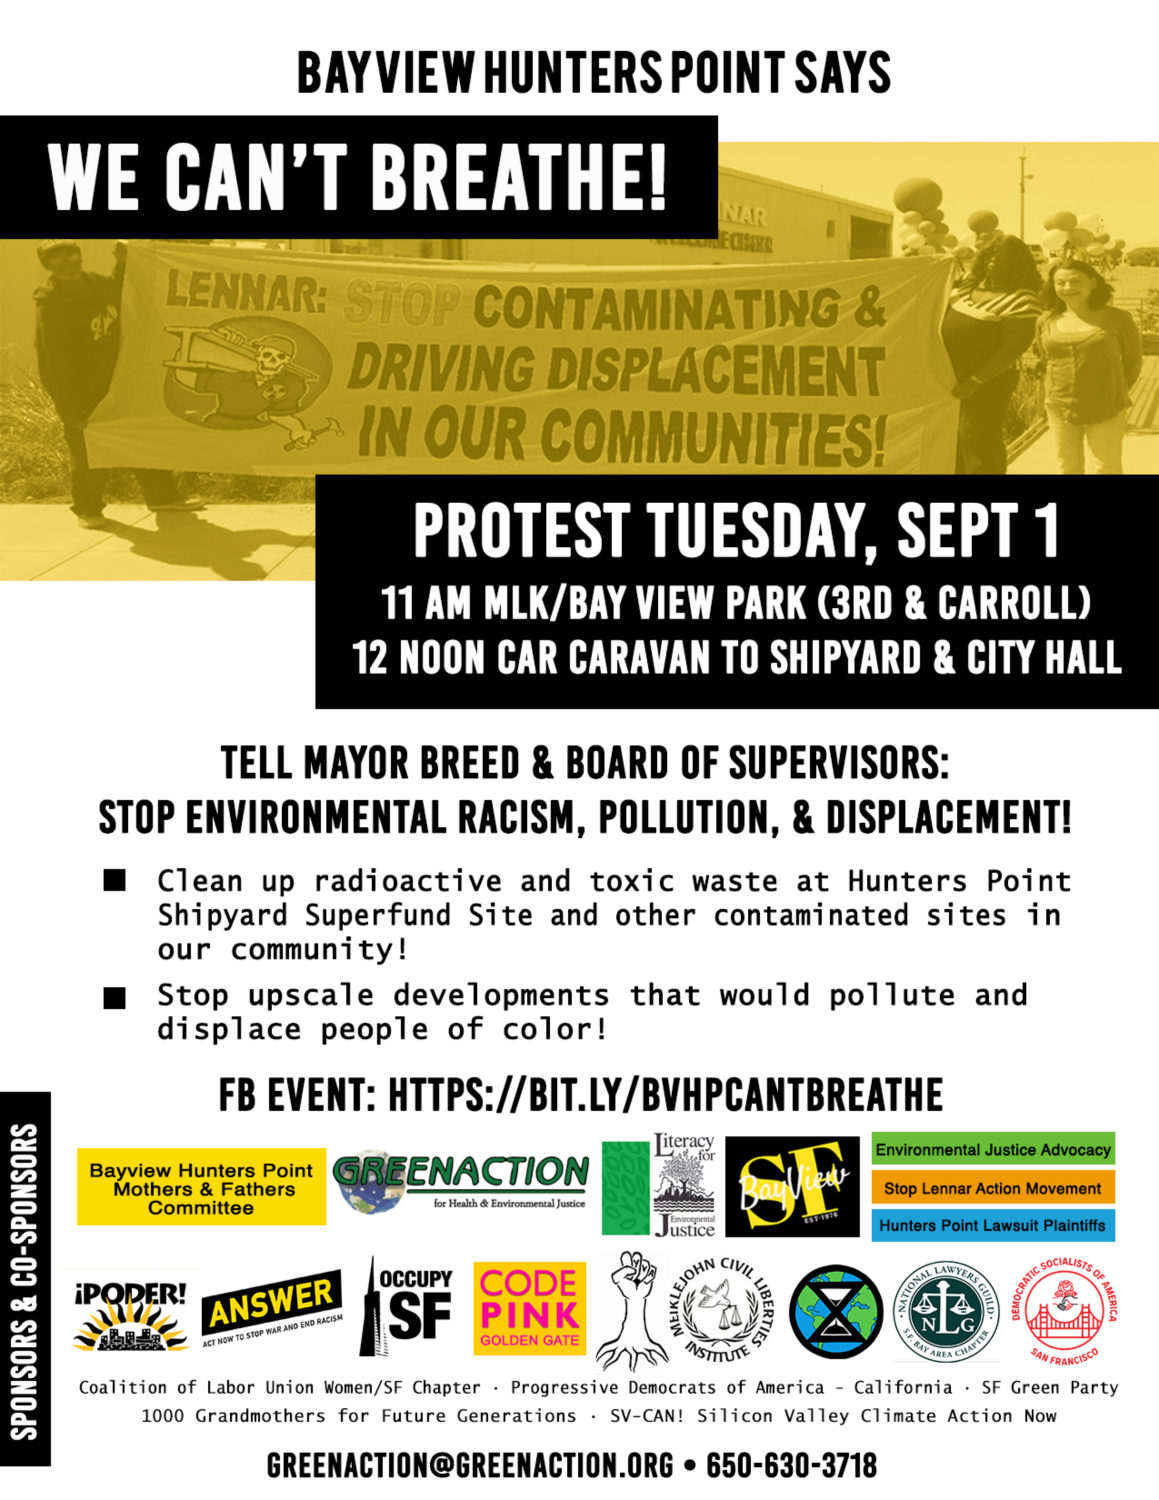 Bayview-Hunters-Point-says-We-Cant-Breathe-Greenaction-poster-for-Hunters-Point-Shipyard-protest-090120-better, Bayview Hunters Point can't breathe, Local News & Views